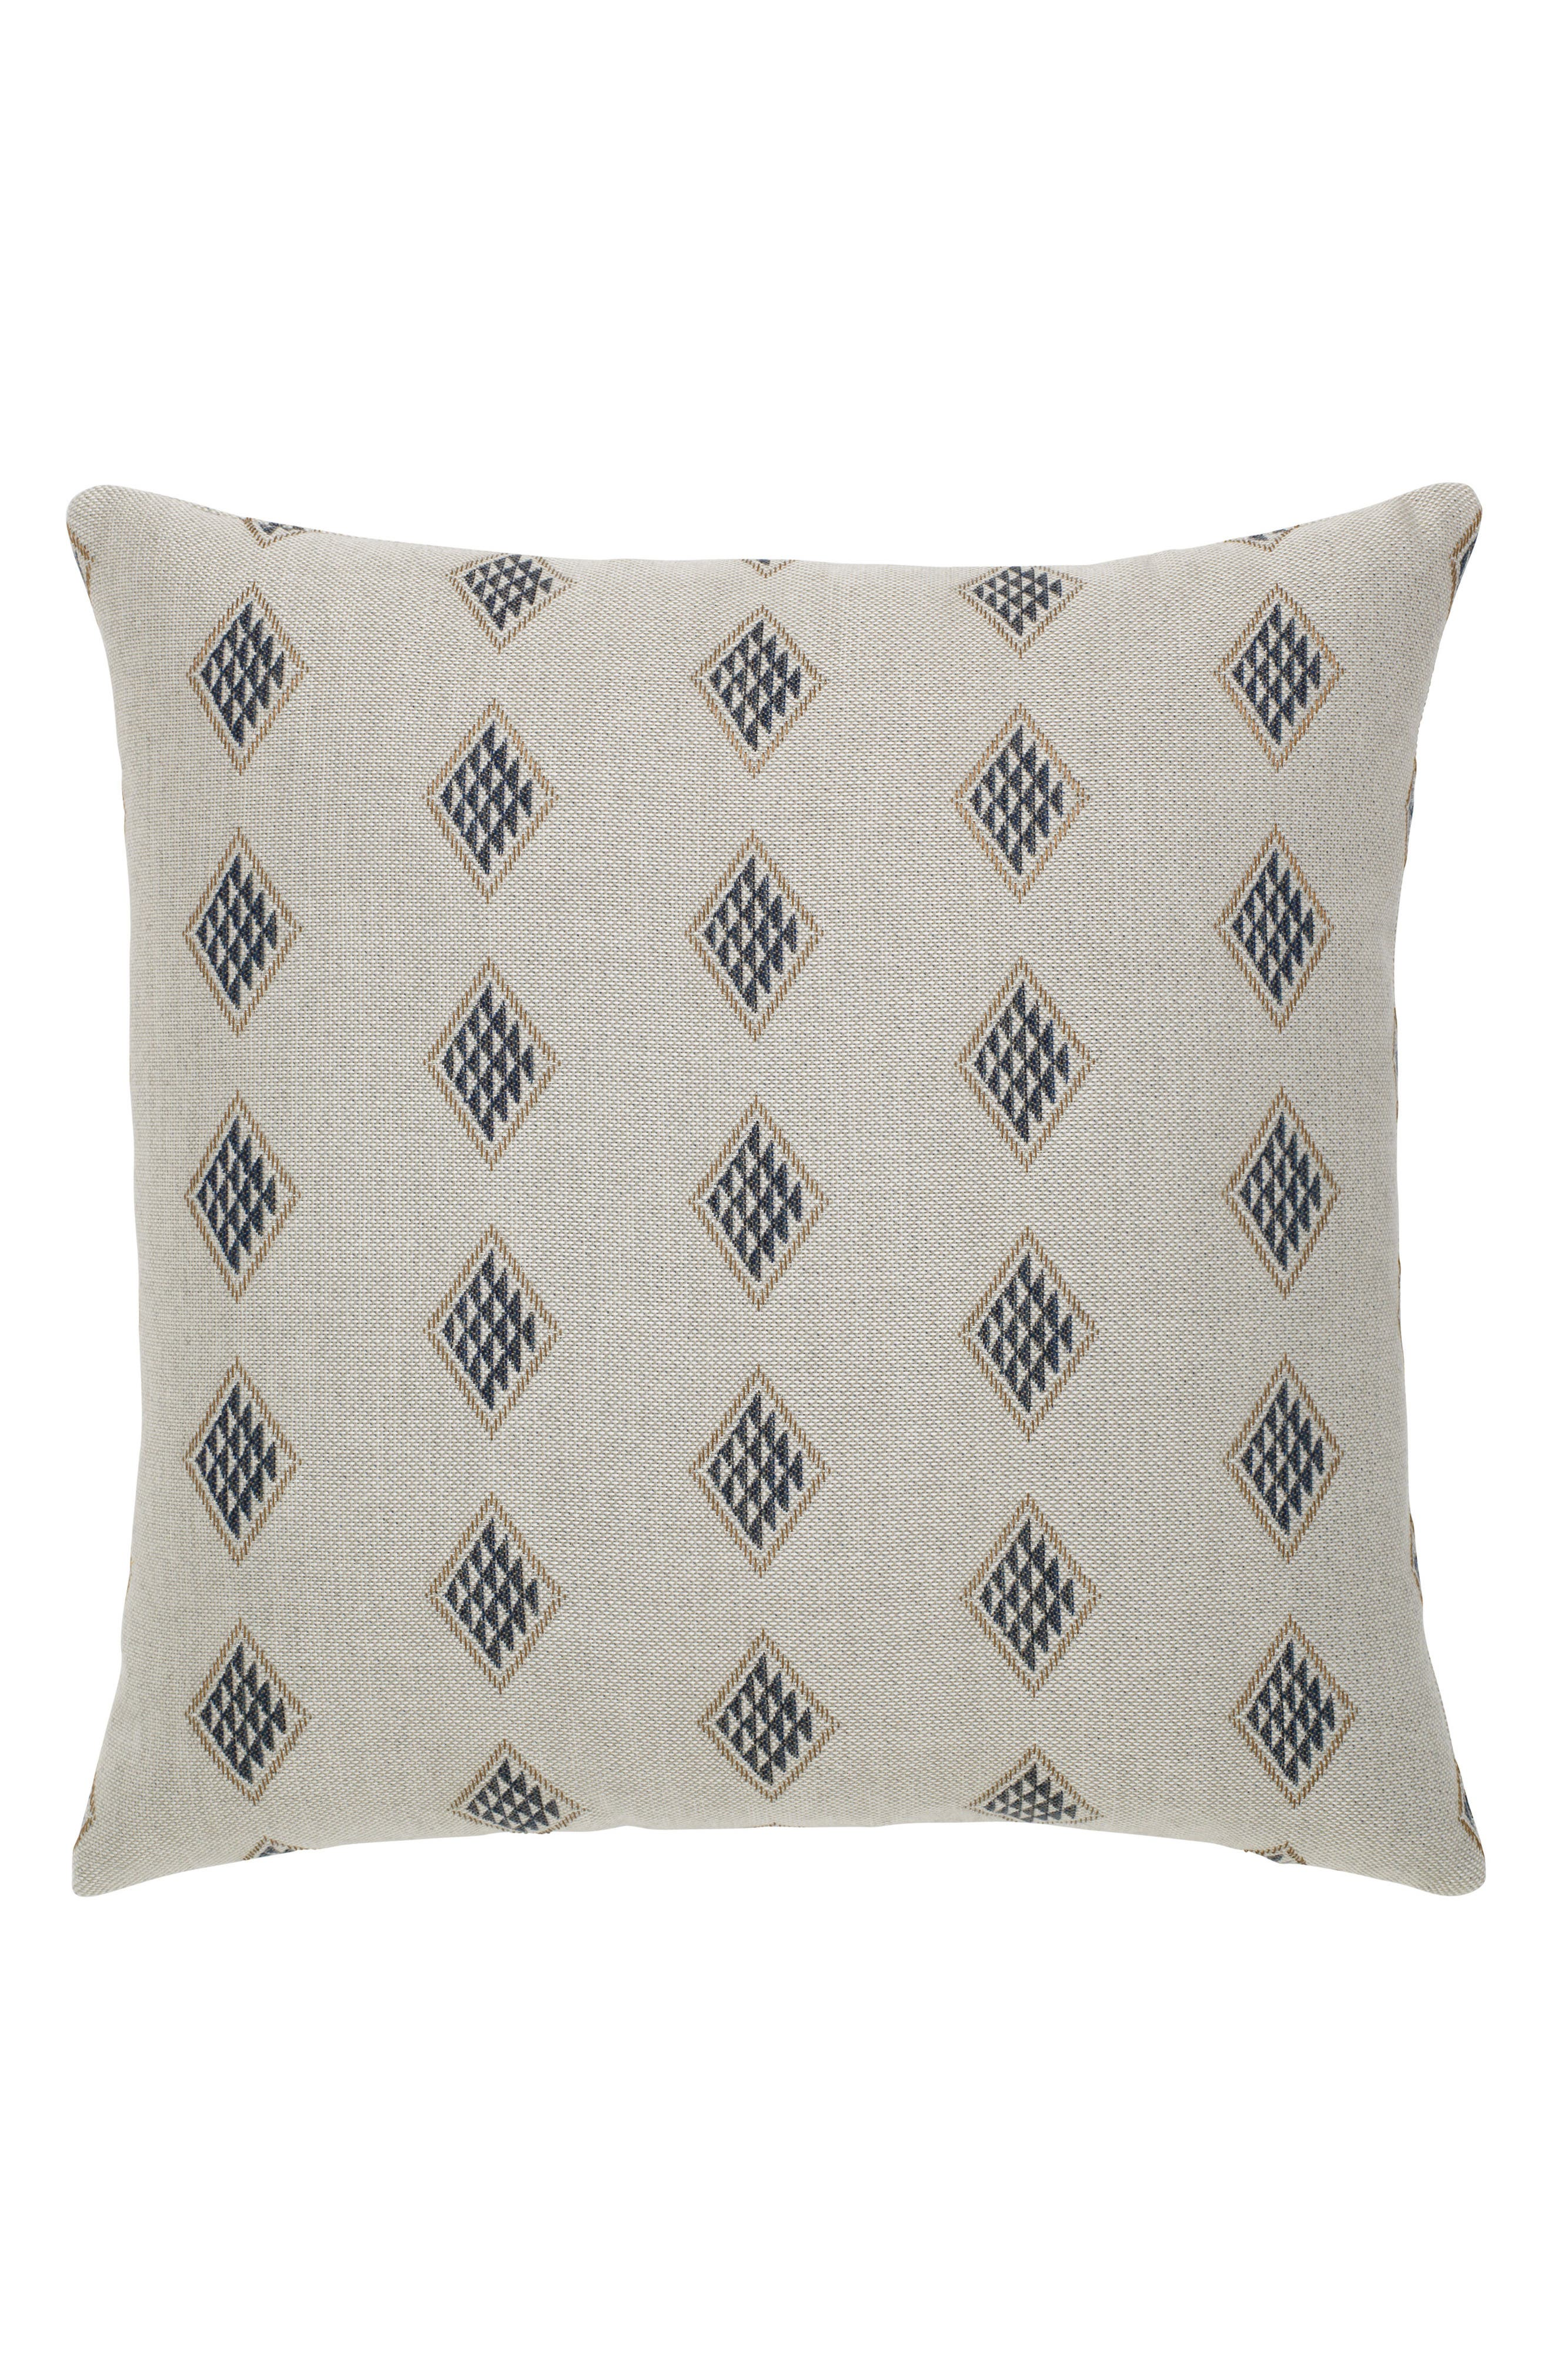 Passage Indoor/Outdoor Accent Pillow,                         Main,                         color, Ivory